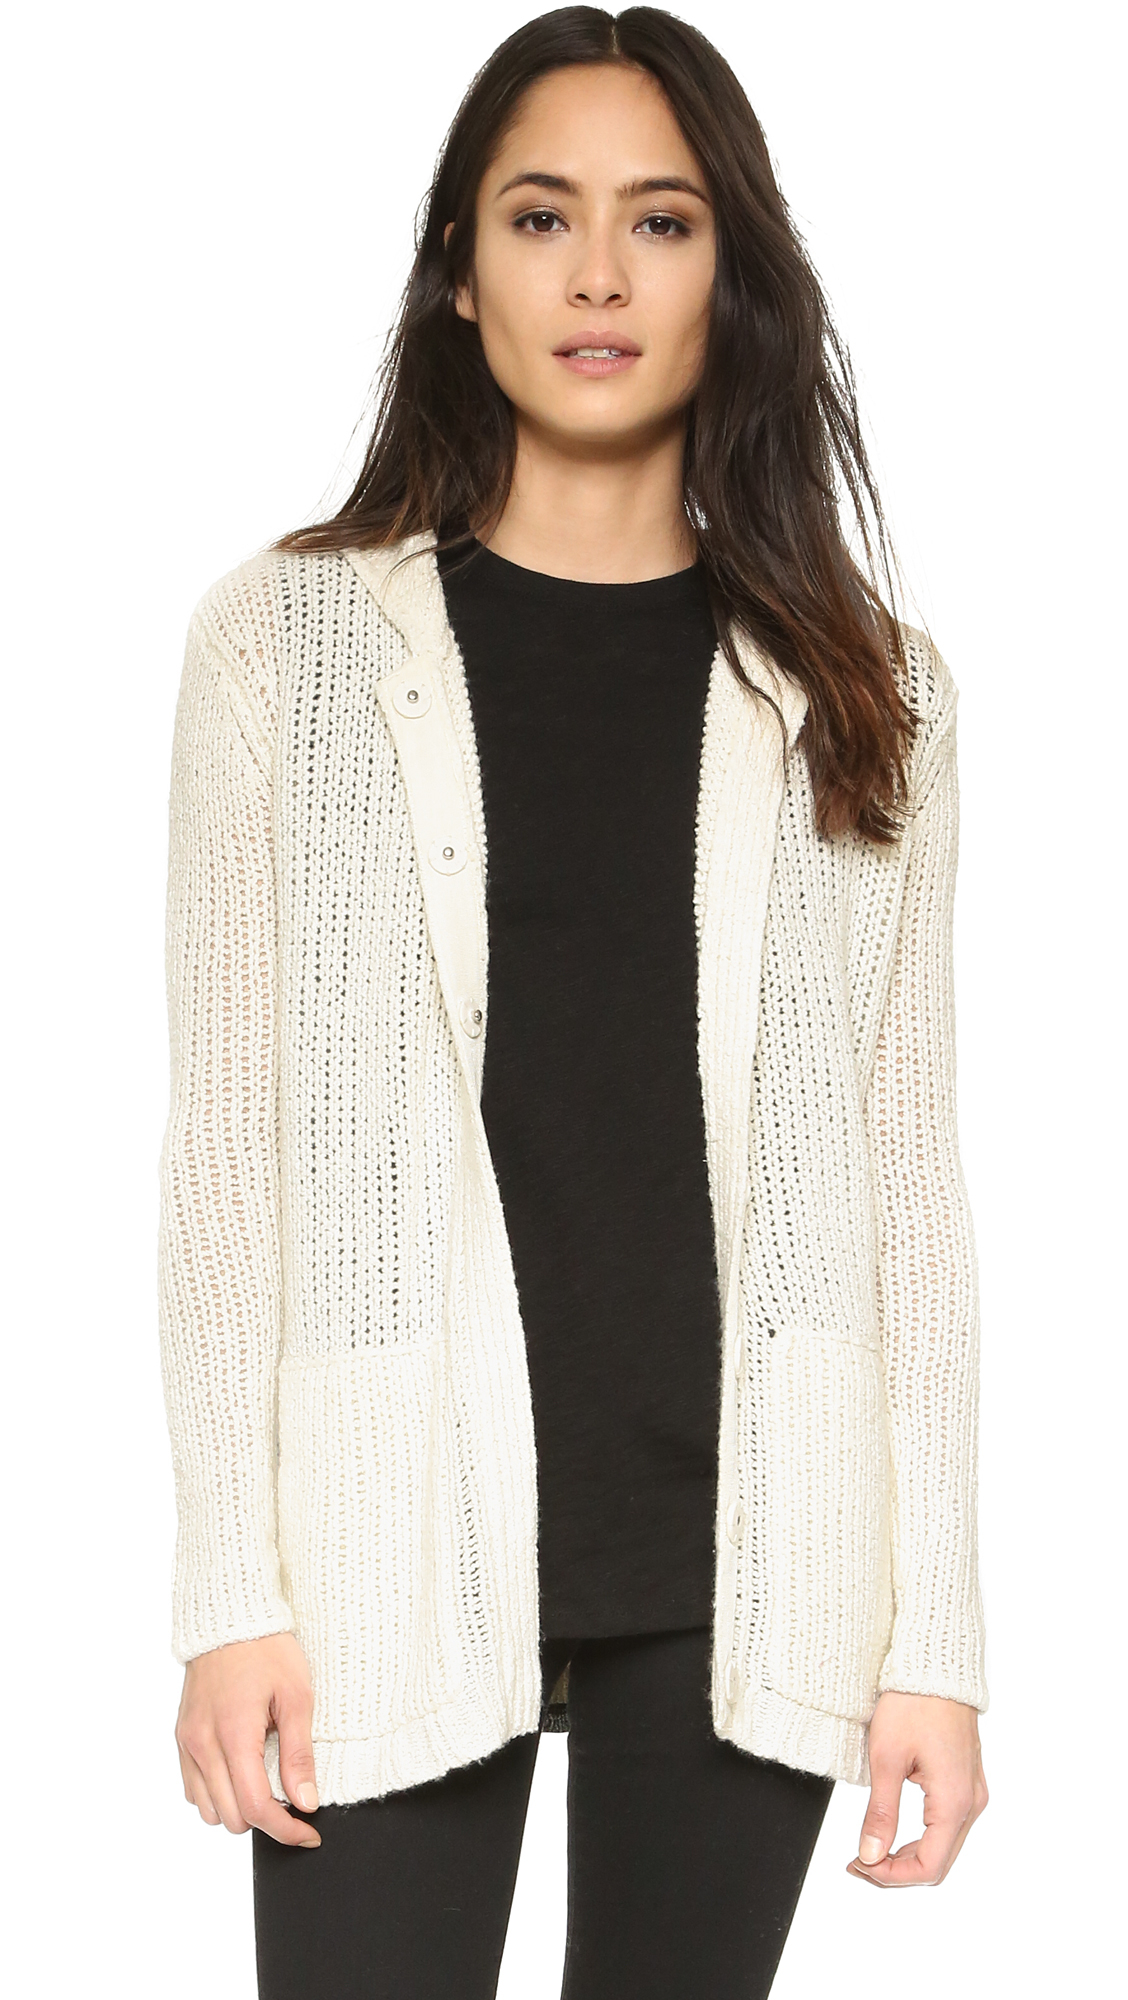 Atm Oversize Hooded Sweater Coat in White | Lyst